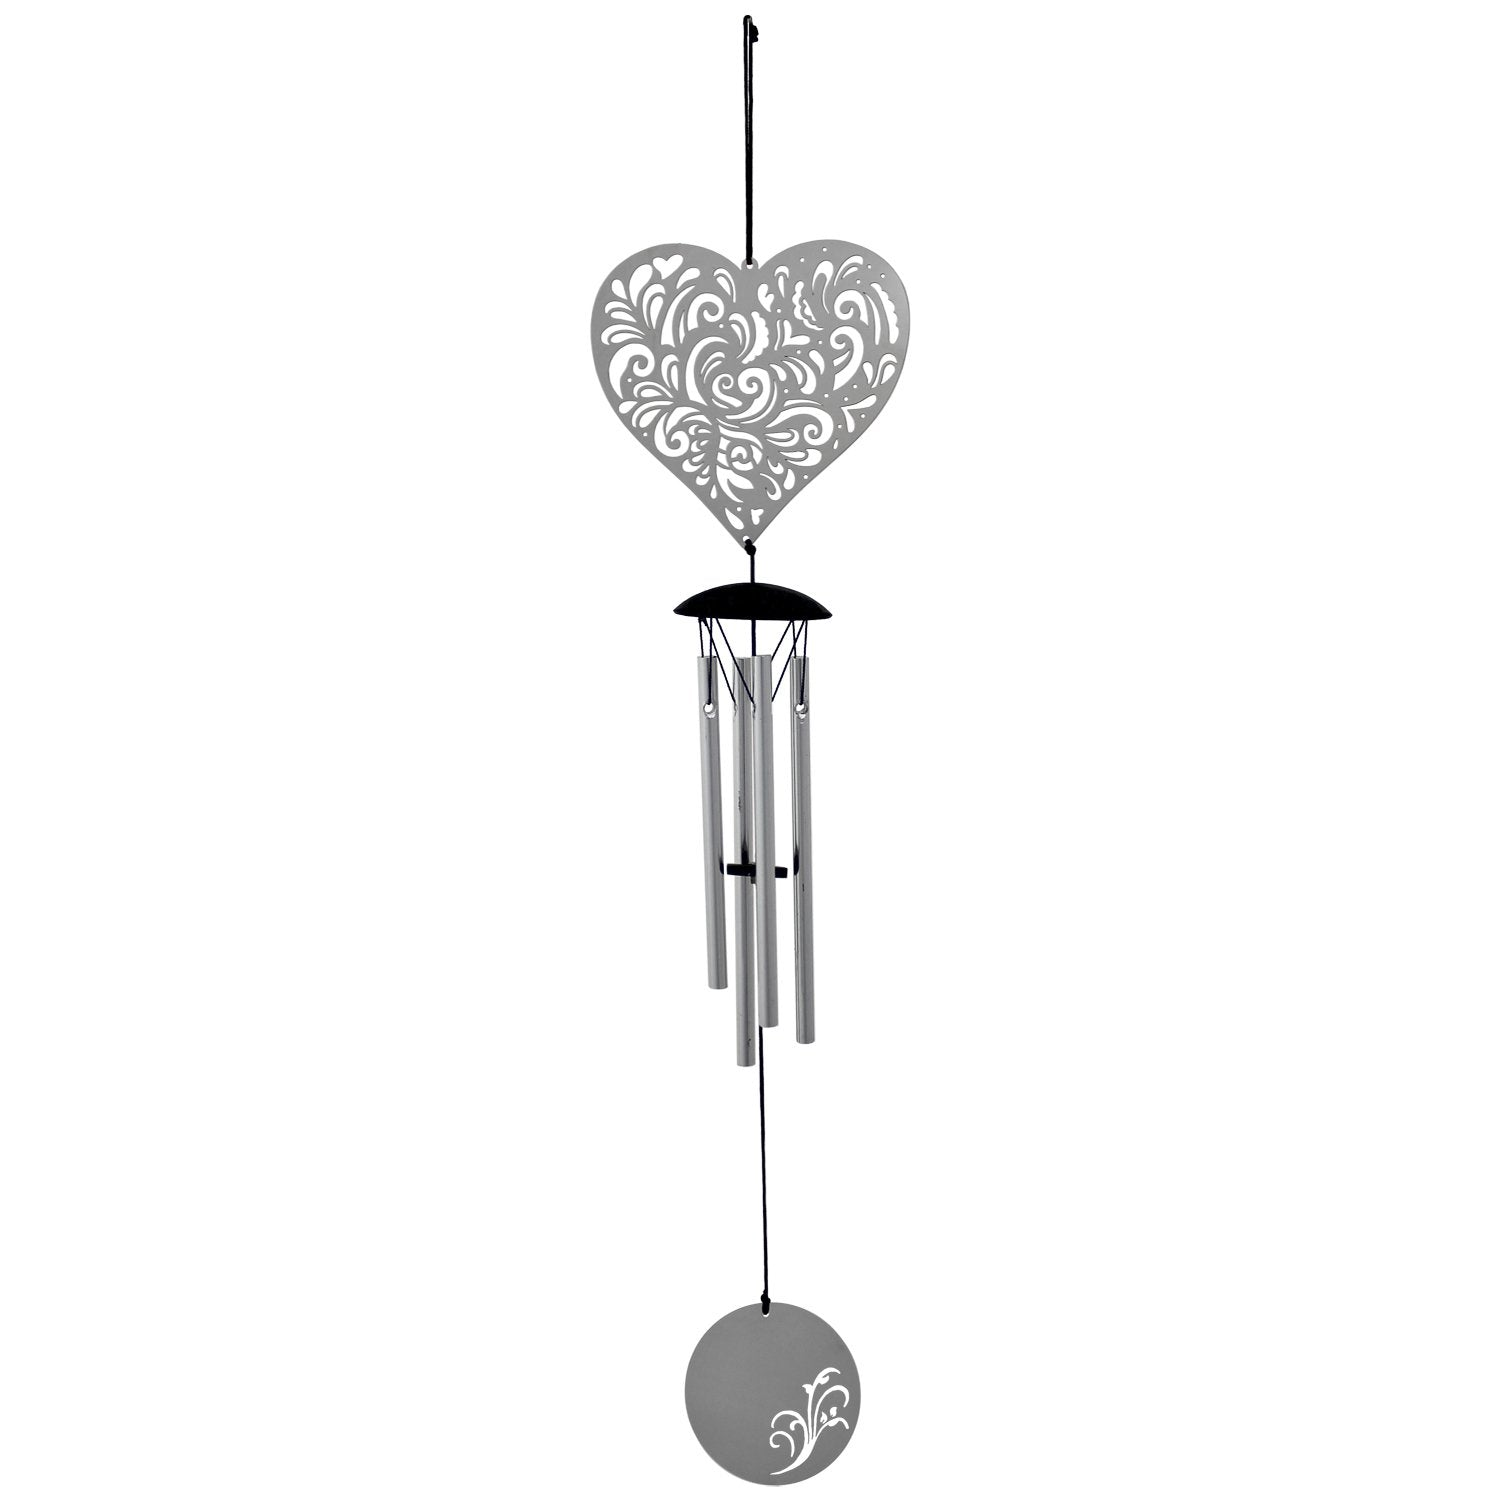 Flourish Chime - Heart full product image